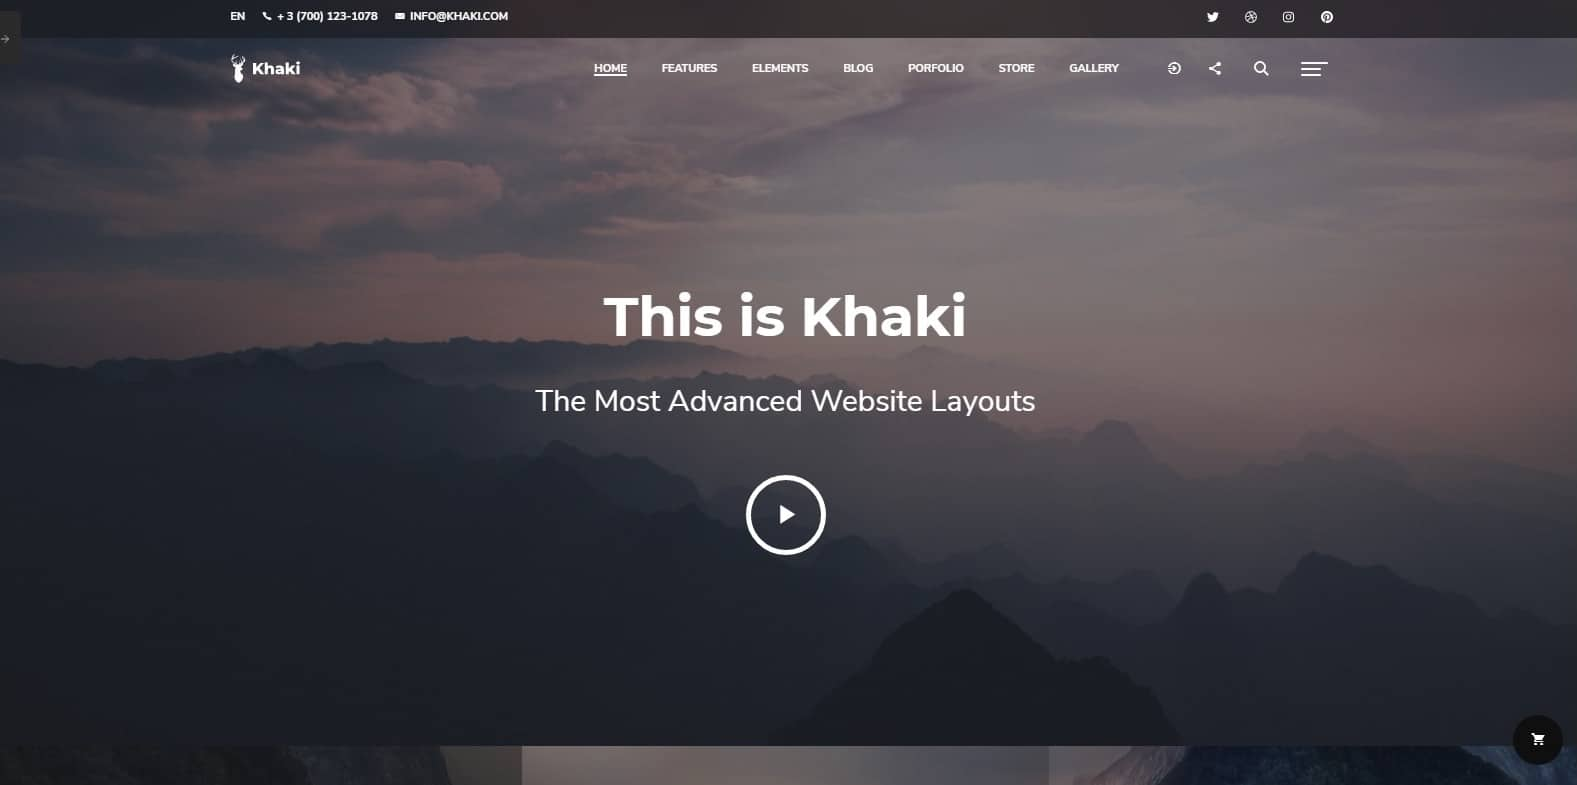 khaki-business-website-template